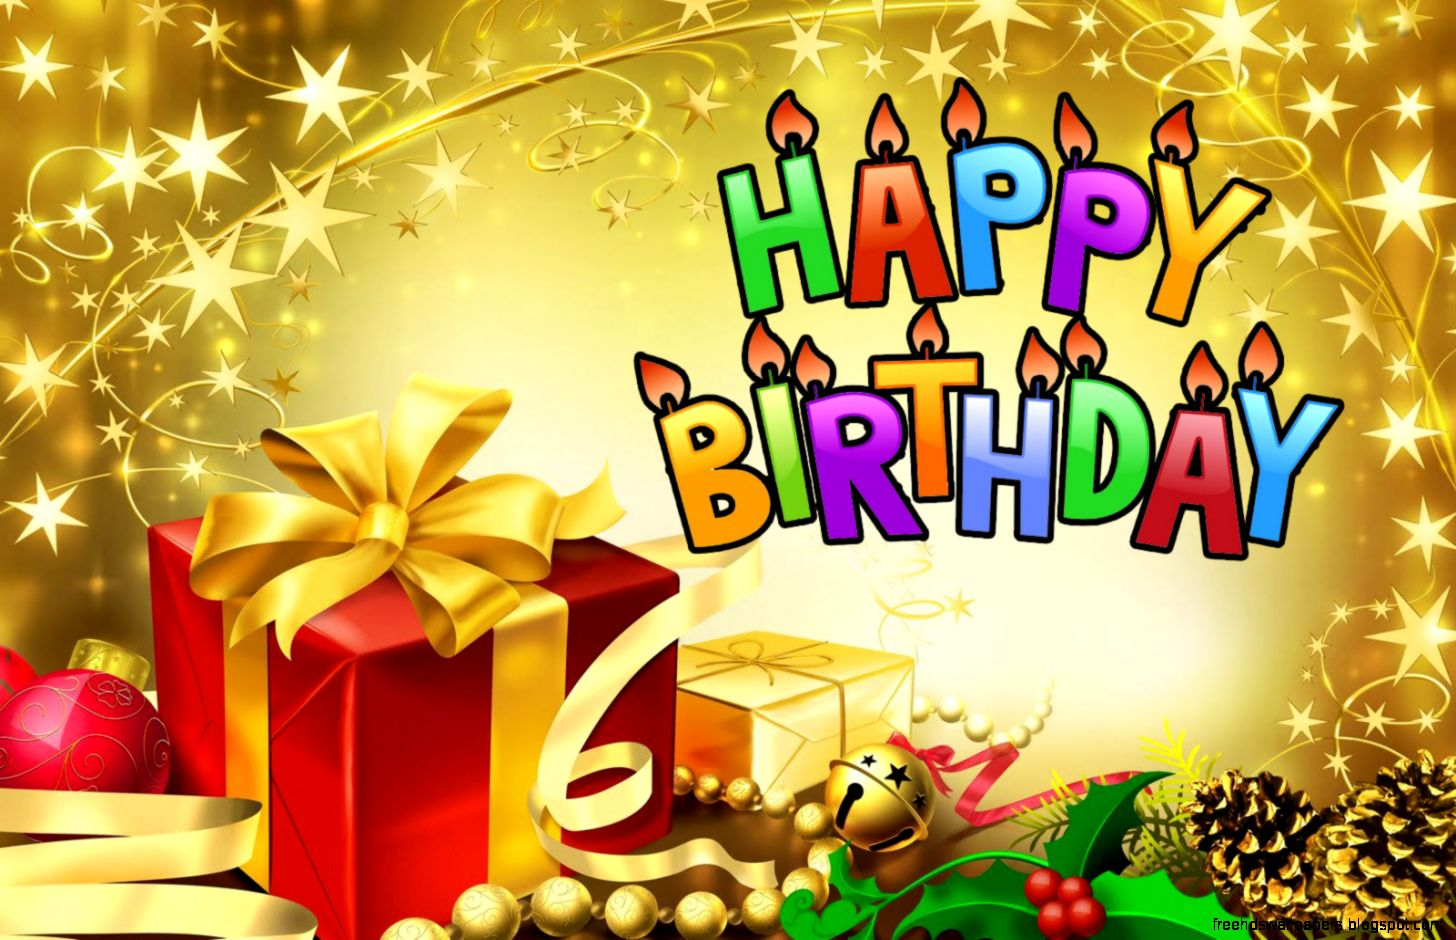 hd wallpaper happy birthday gifts ; happy-birthday-with-gift-for-facebook-daily-pics-update-hd